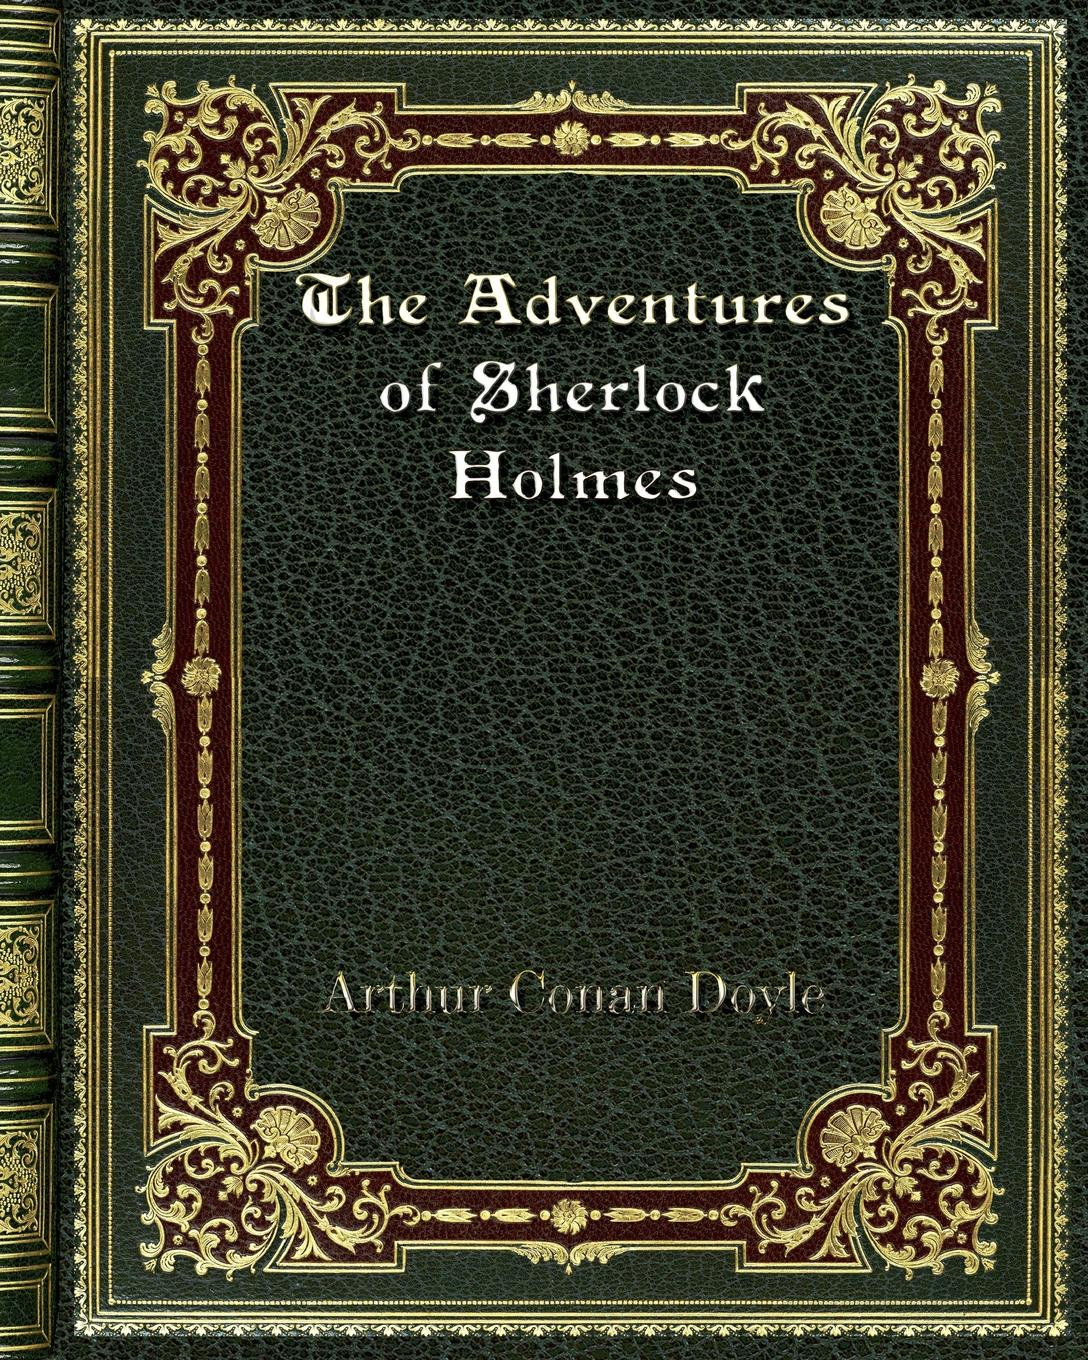 купить Arthur Conan Doyle The Adventures of Sherlock Holmes в интернет-магазине